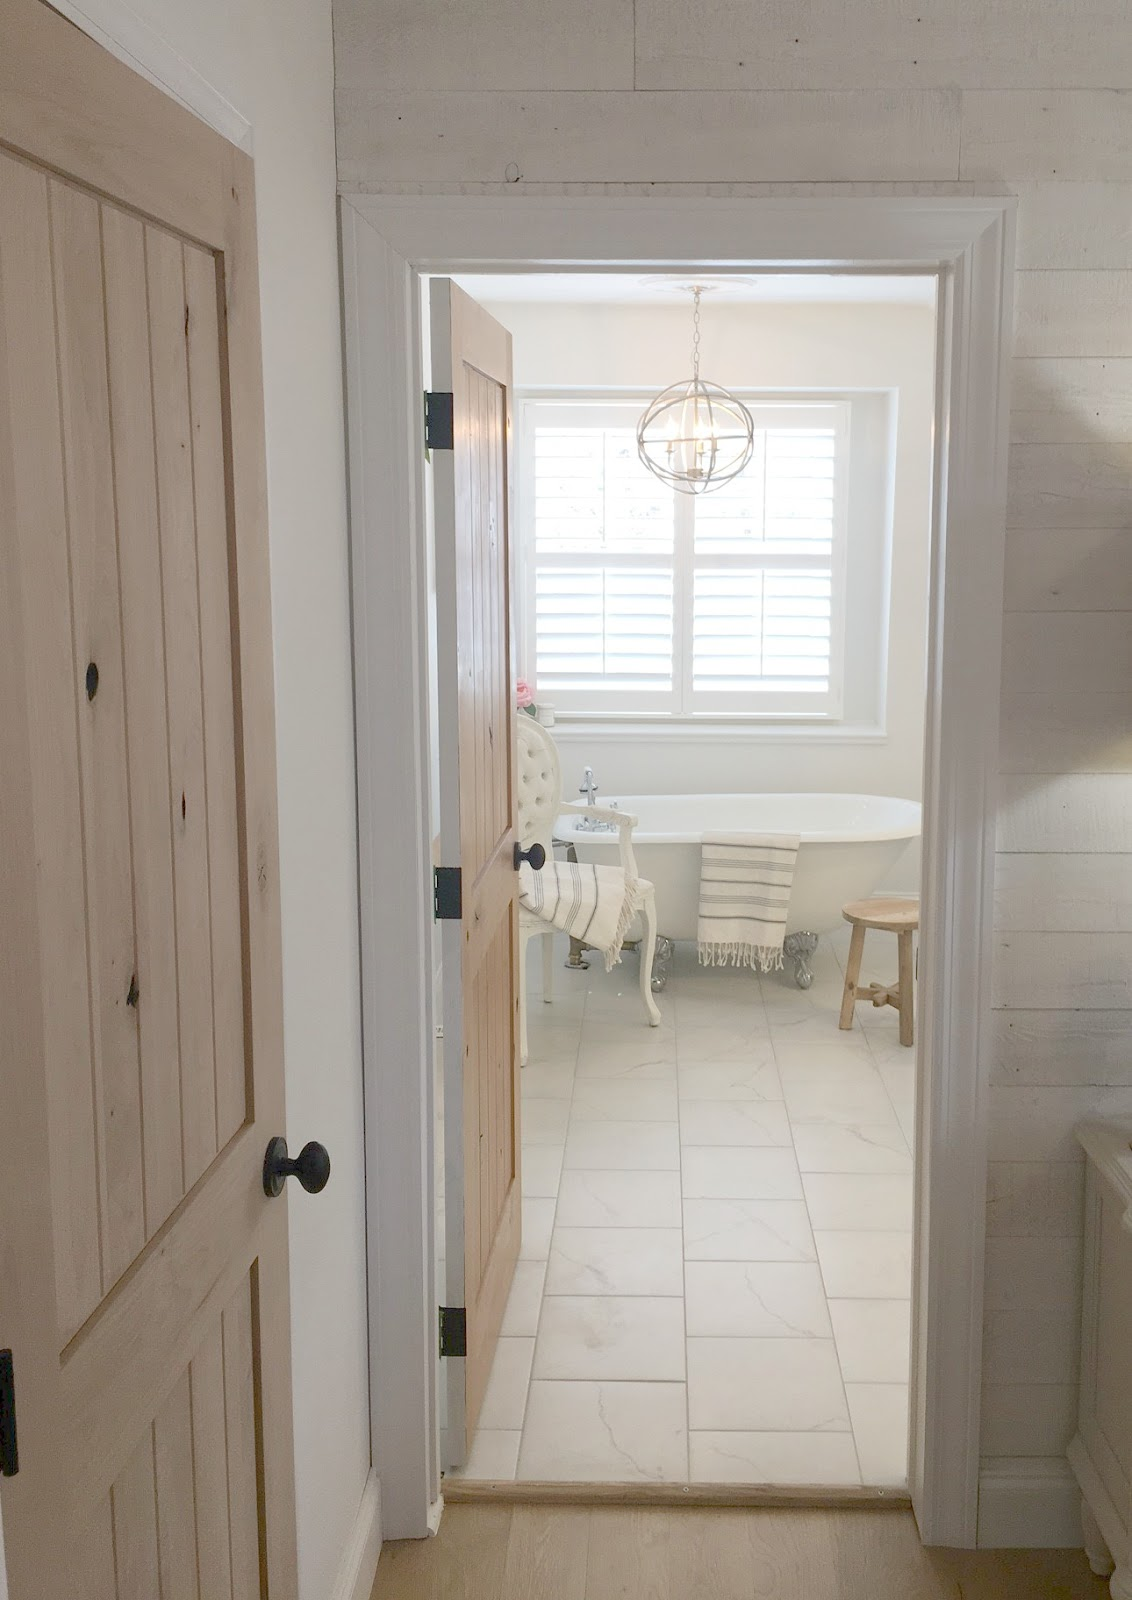 White Bathroom with vintage style and clawfoot tub by Hello Lovely Studio. #bathroom #vintage #alderdoor #clawfoottub